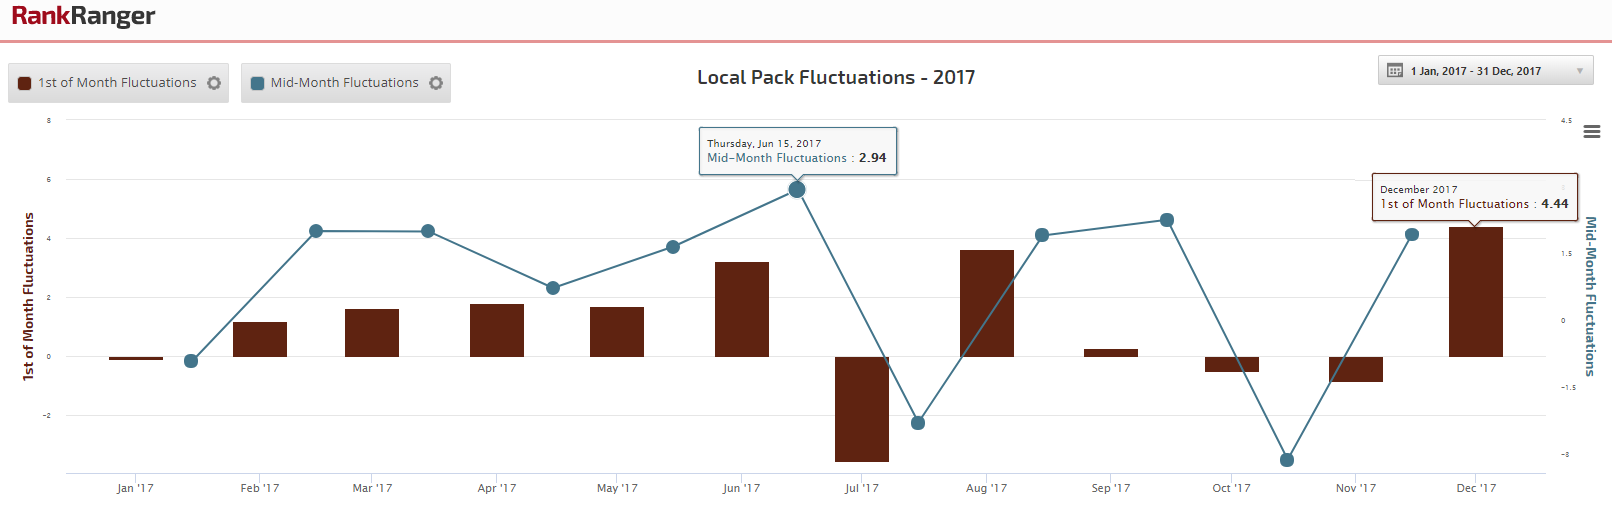 Local Pack Fluctuations 2017